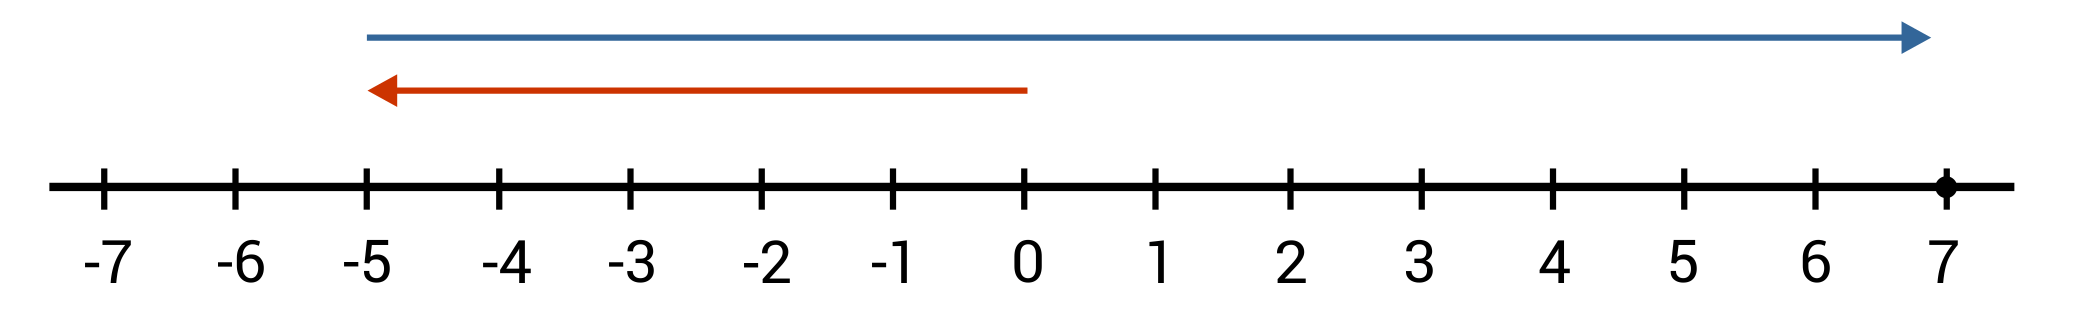 Negative 7 to 7 number line